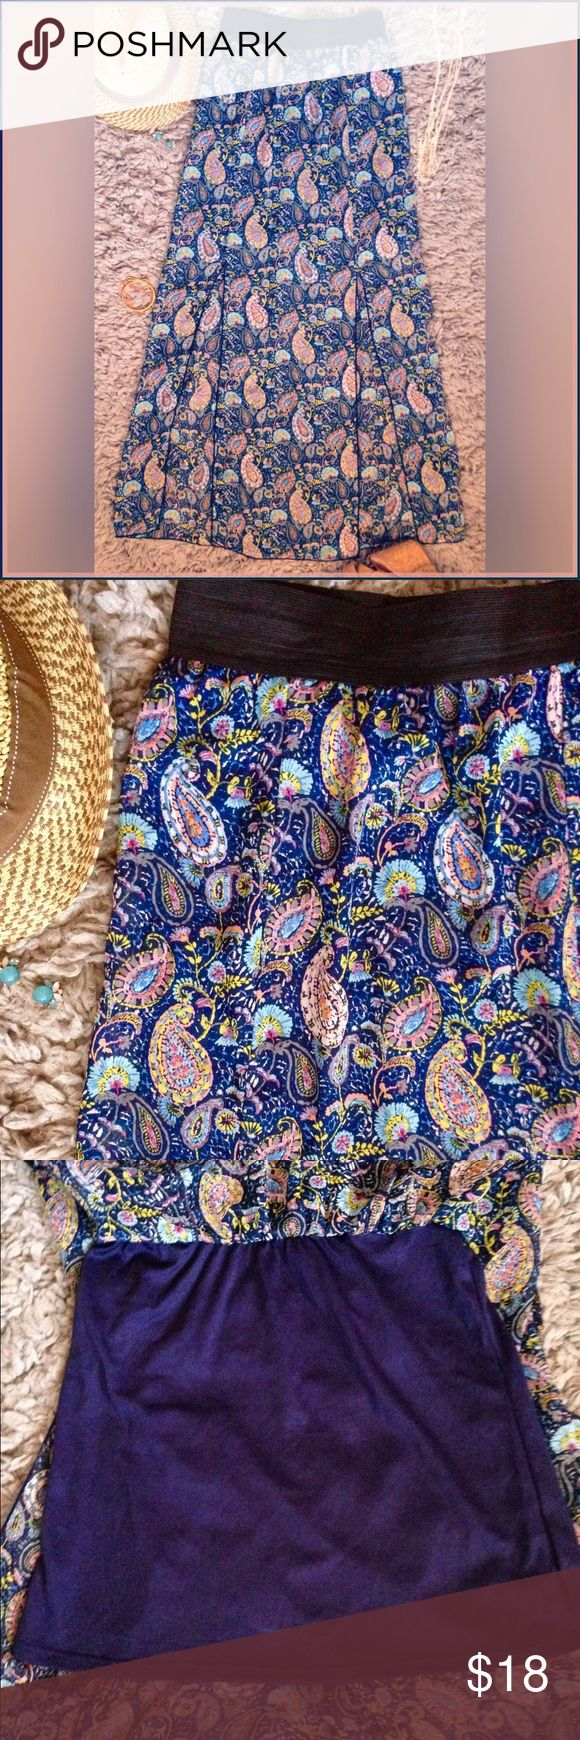 Sheer Long Maxi Skirt Socialite Clothing sheer maxi skirt with paisley pattern. Beautiful chiffon material over shorter navy skirt! Two slits give a nice draping and flow effect. Pull on and stretch band top for easy wear. Polyester blend. Gently worn once, in perfect condition. Socialite  Skirts Maxi